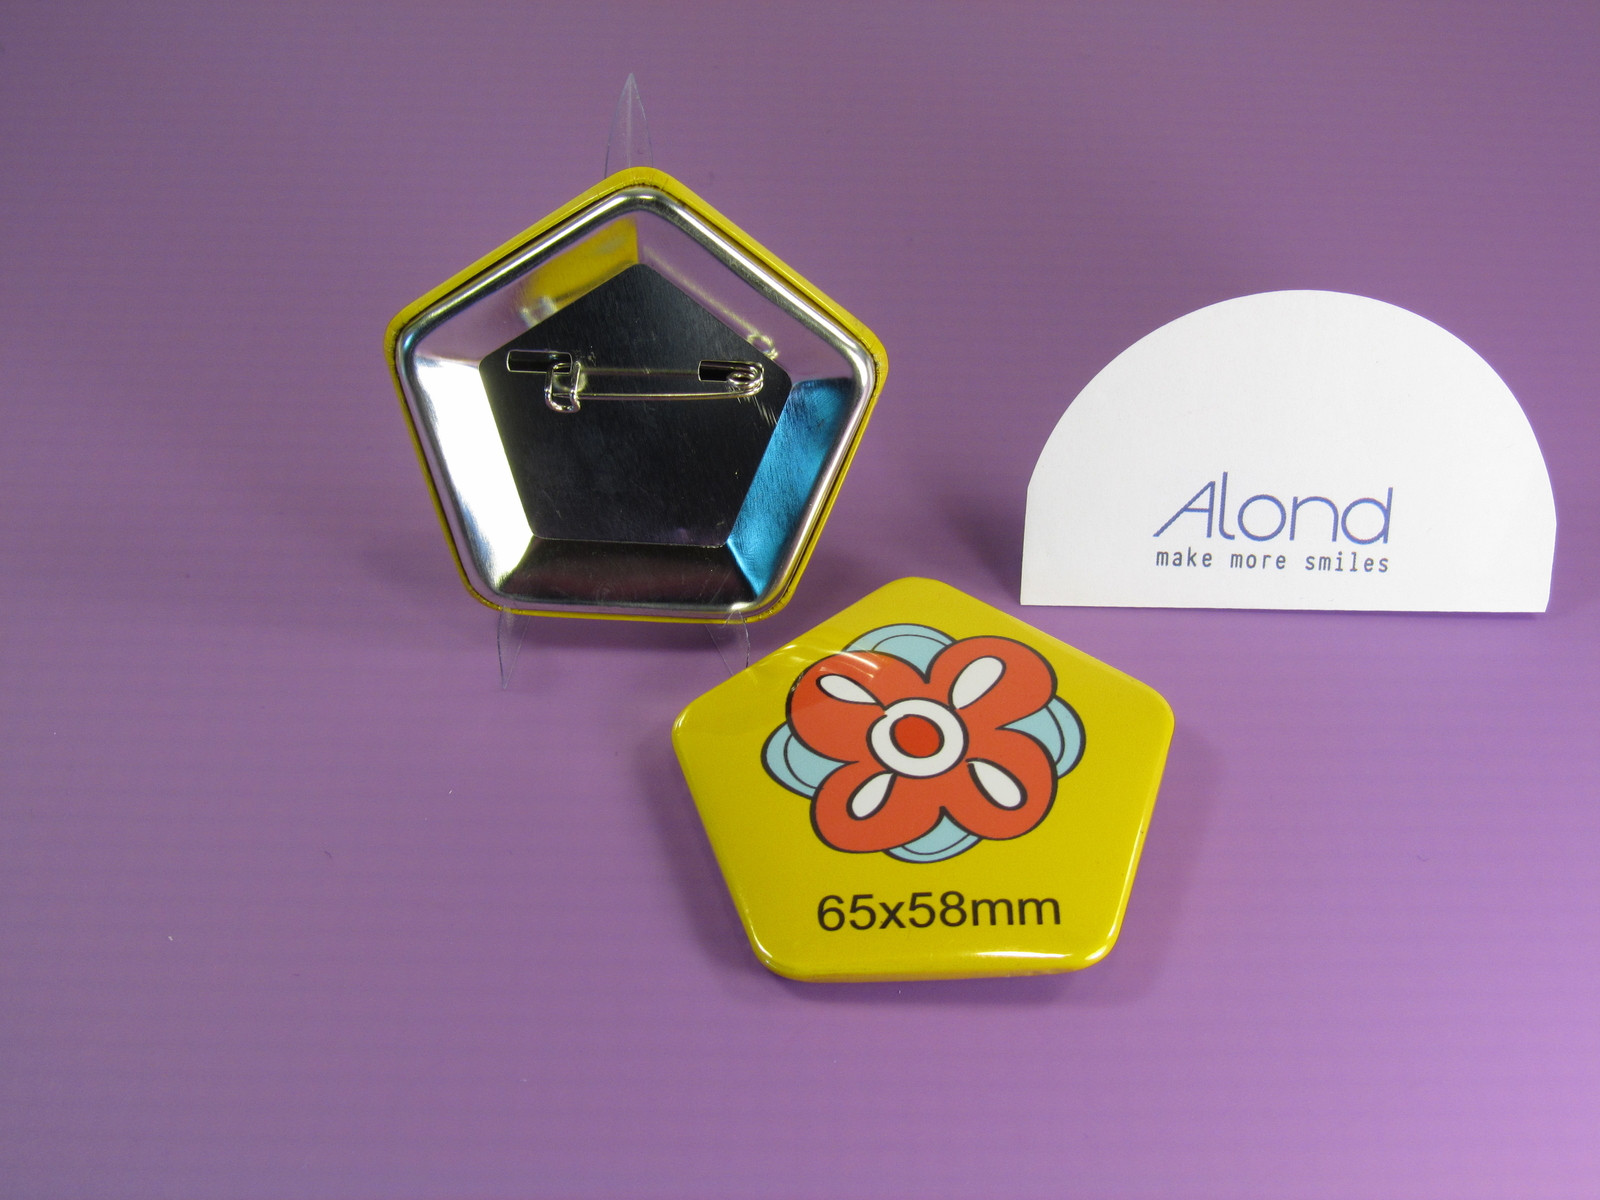 A pentagonal or 5 sided pin badge, very unusual in a pentangle shape